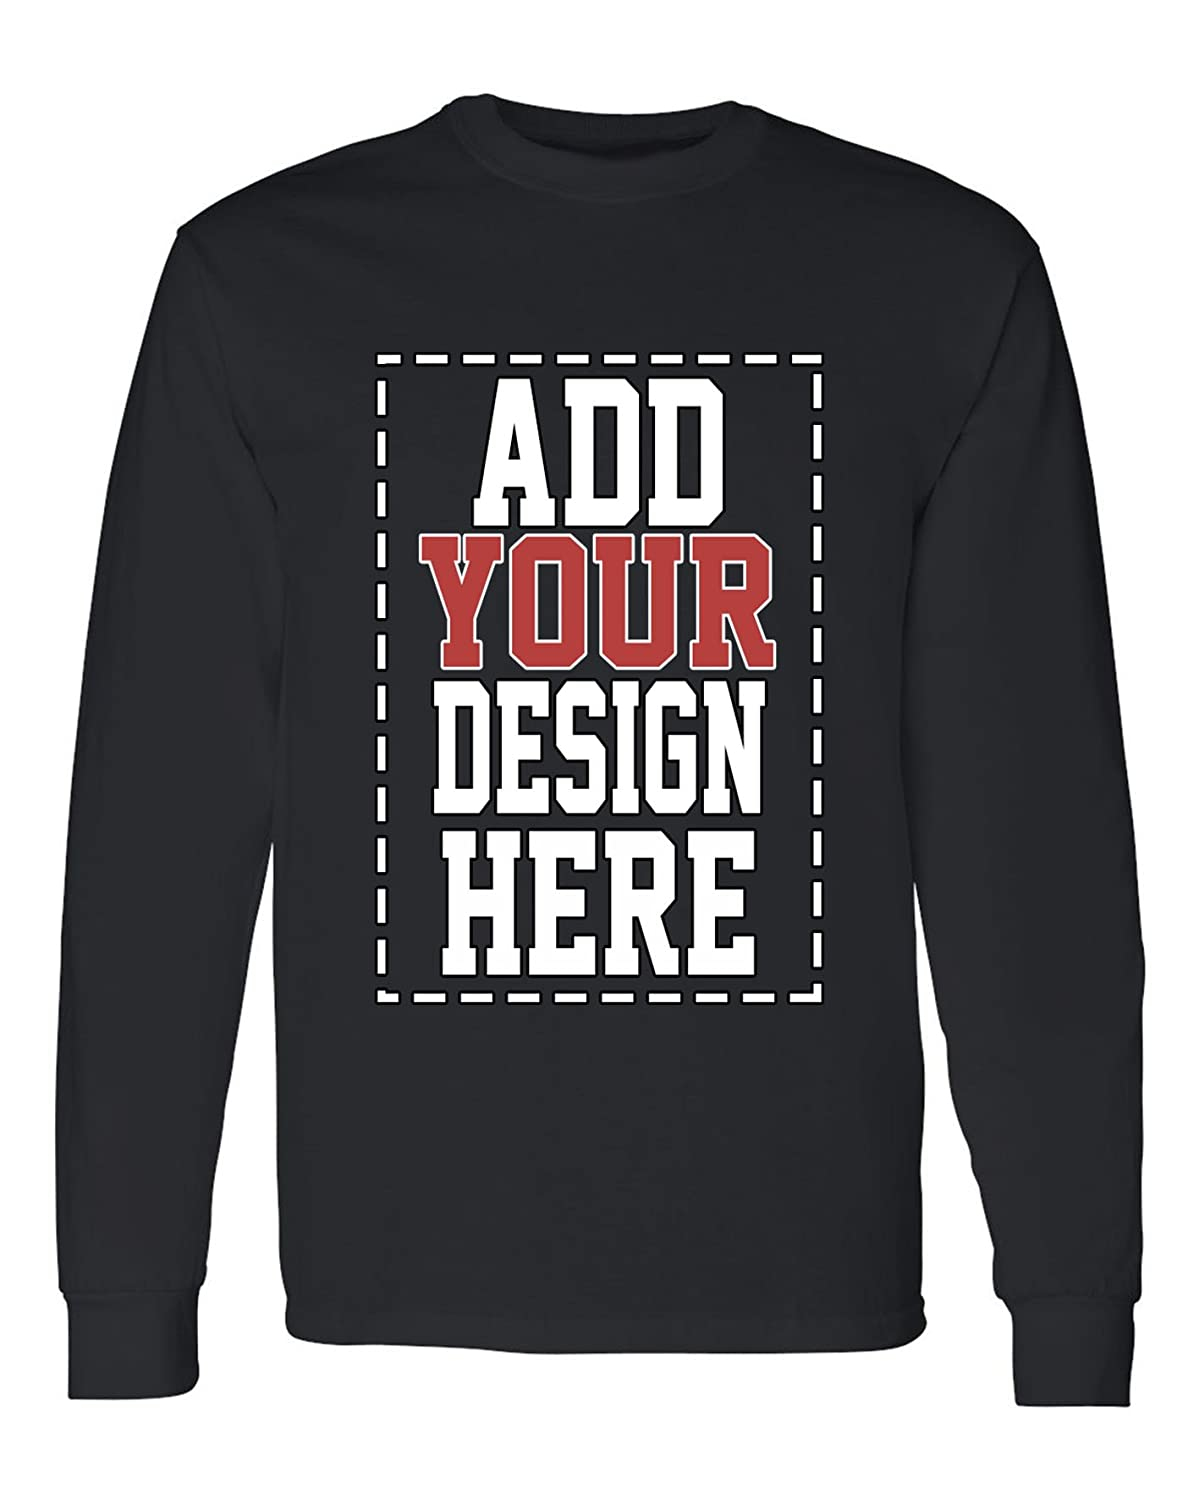 e72adcc3 Amazon.com: Custom Long Sleeve Shirts for Men - Make Your OWN Shirt - Add  Your Design Picture Photo Text Printing: Clothing